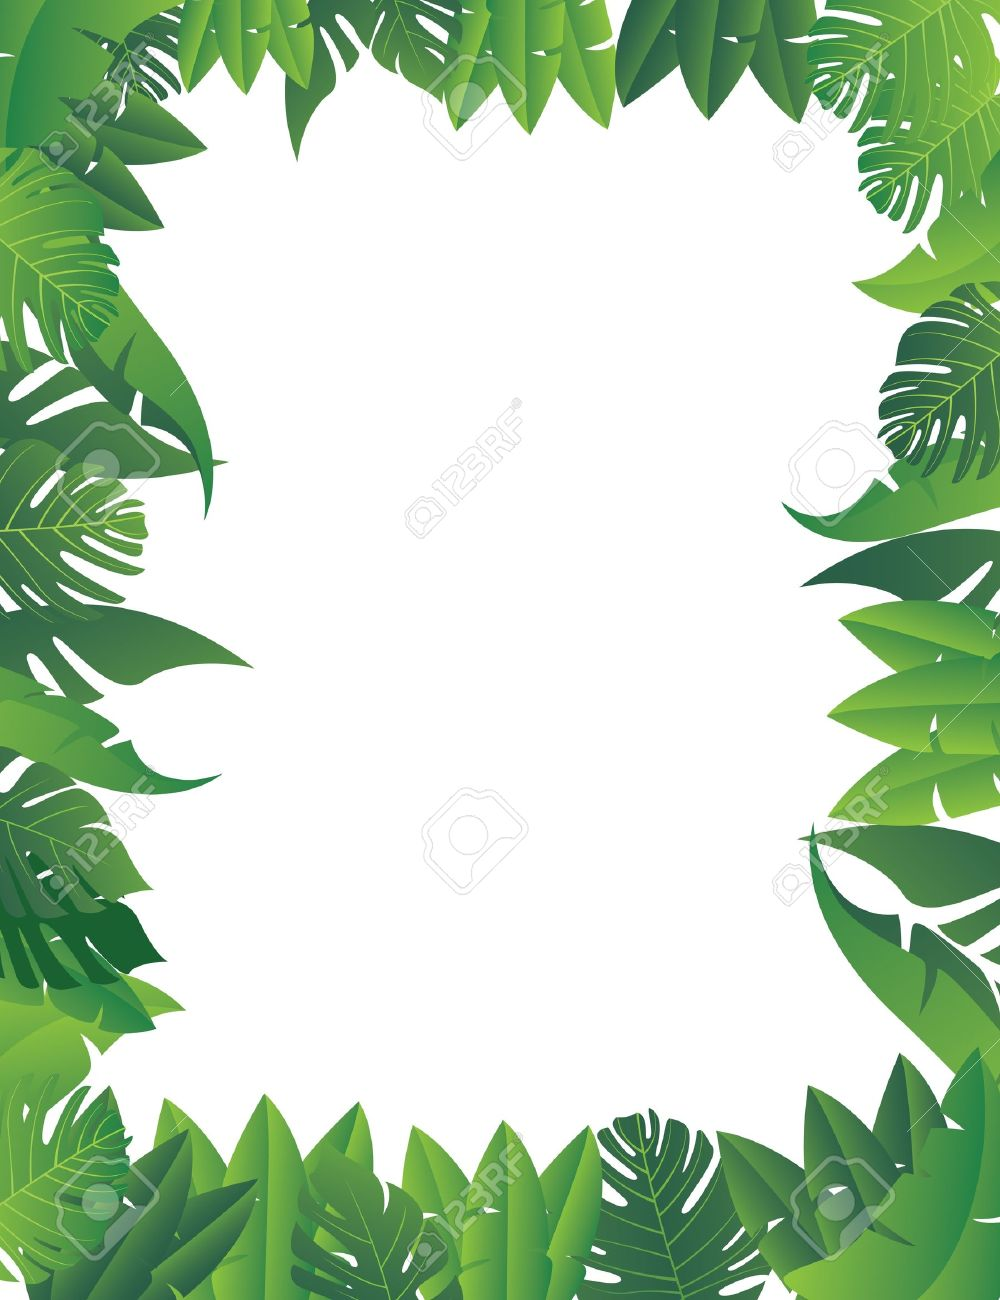 Branch clipart jungle. Leaves background station